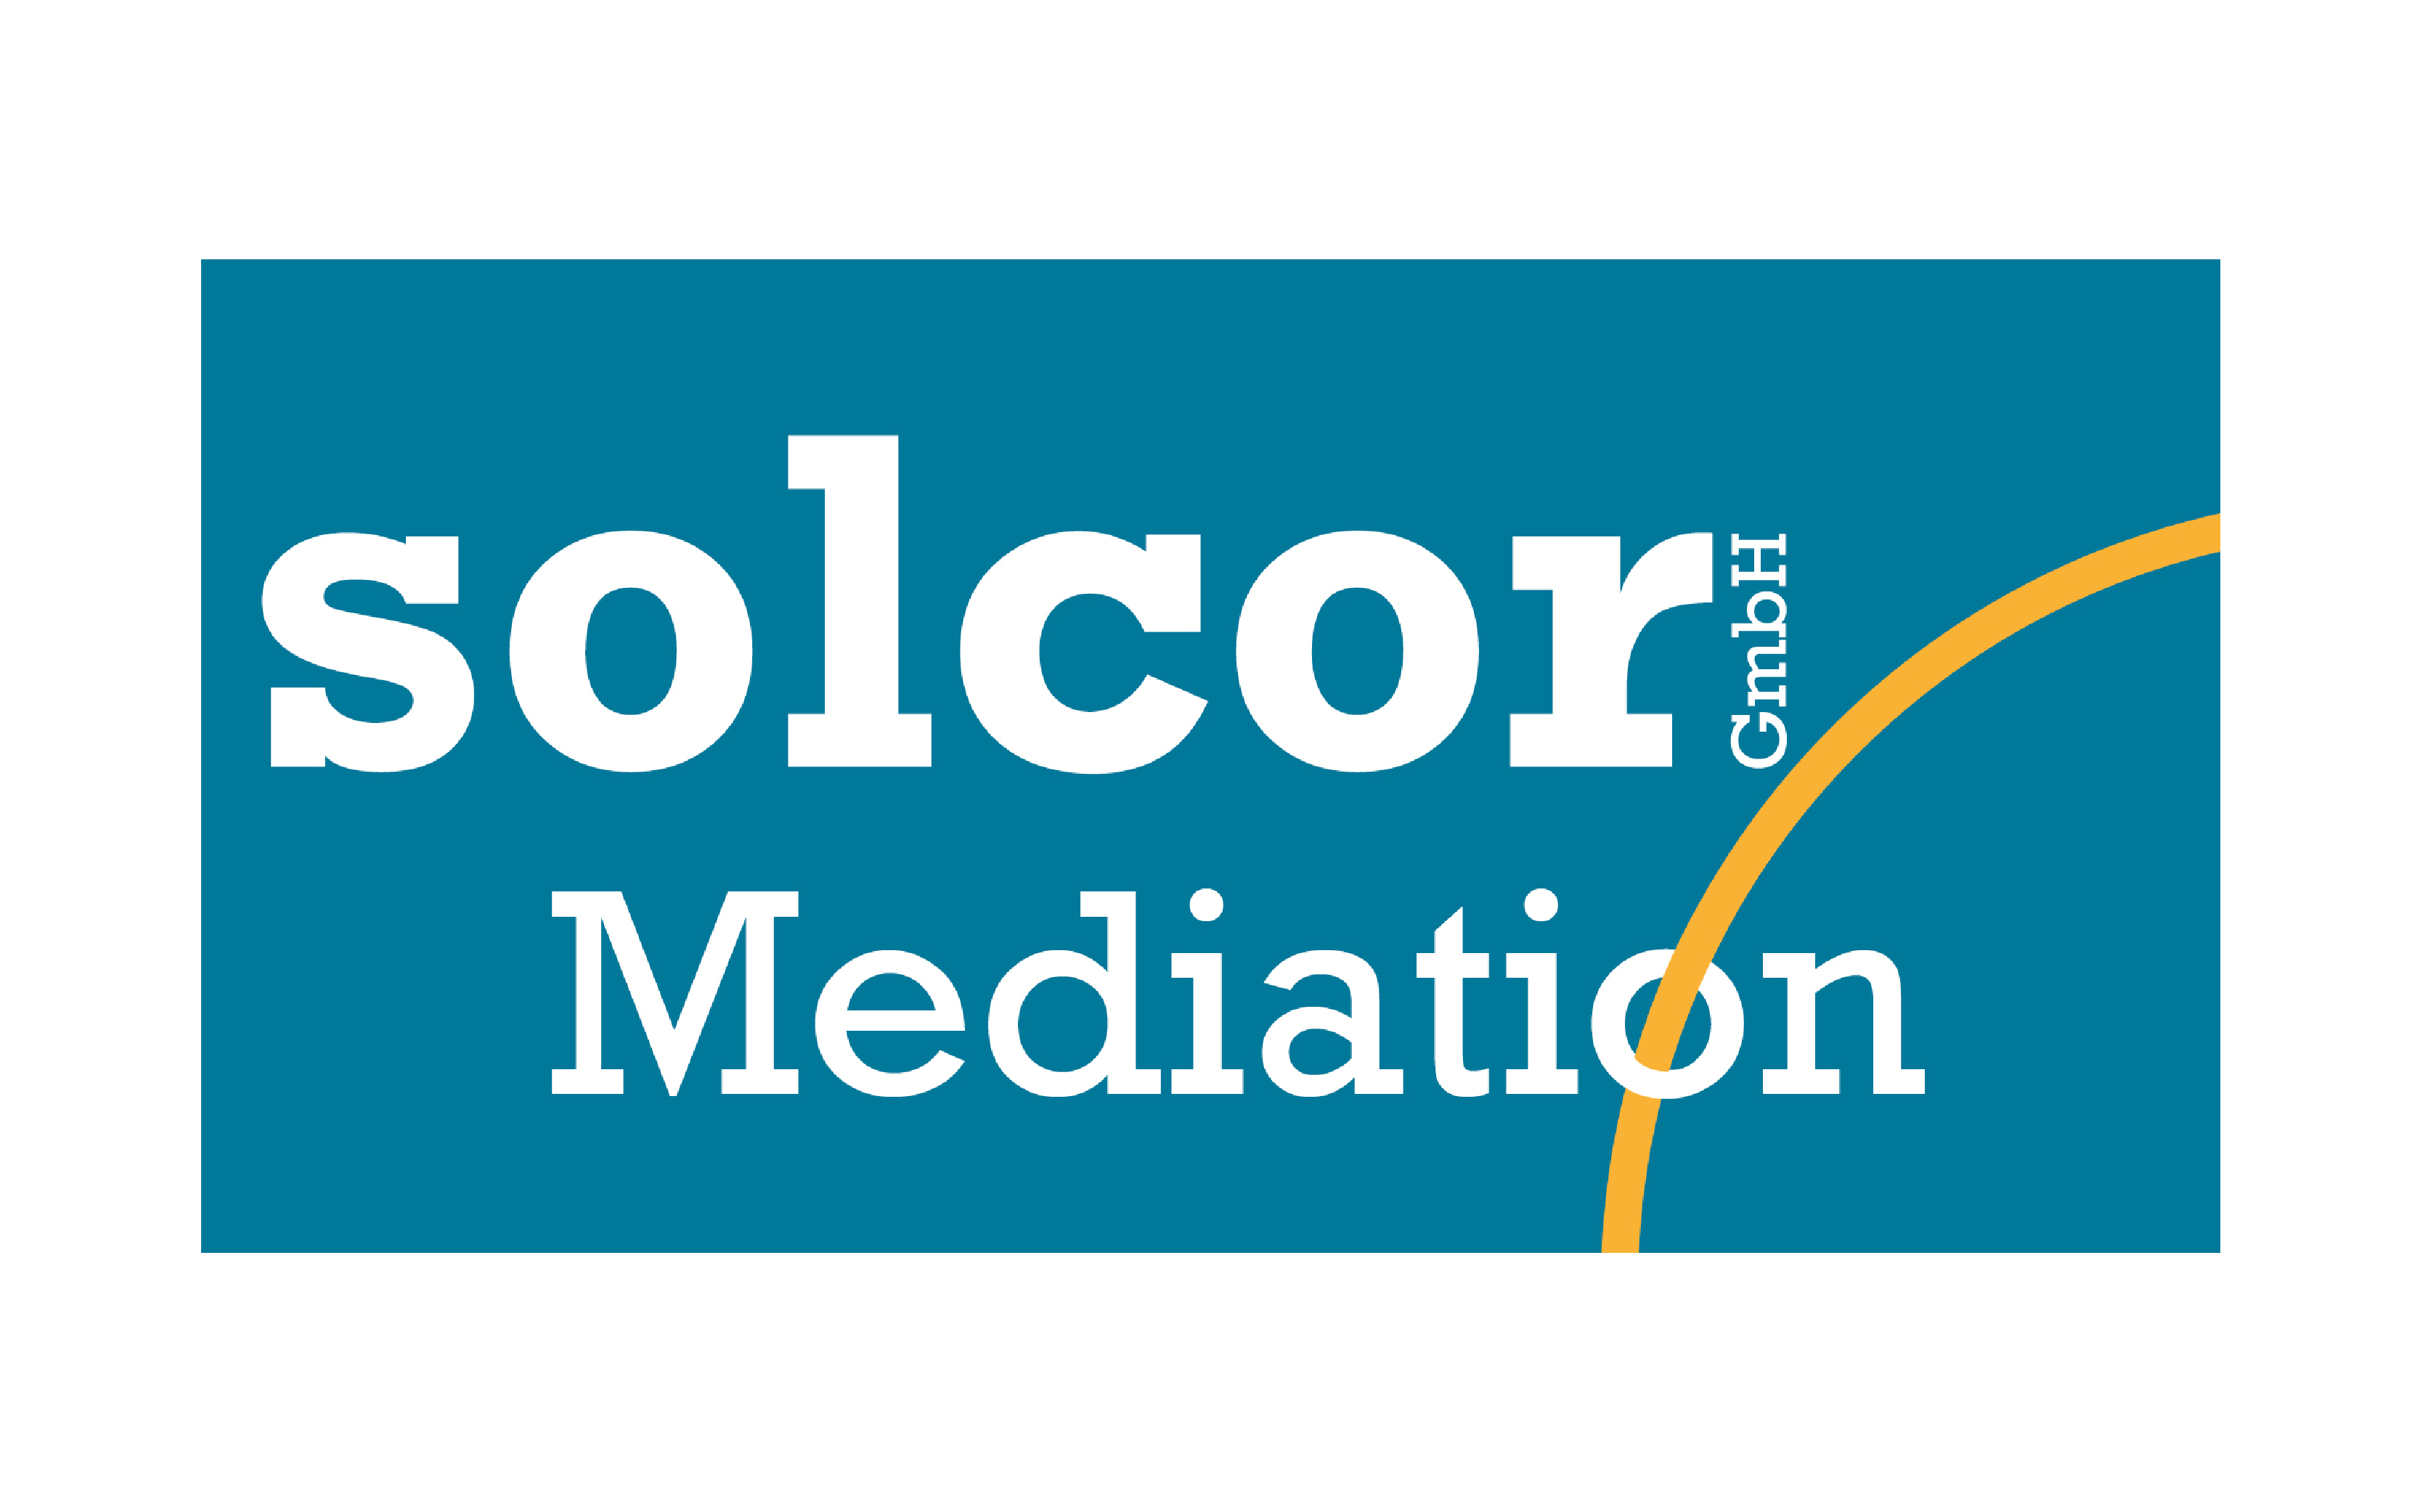 Solcor Mediation